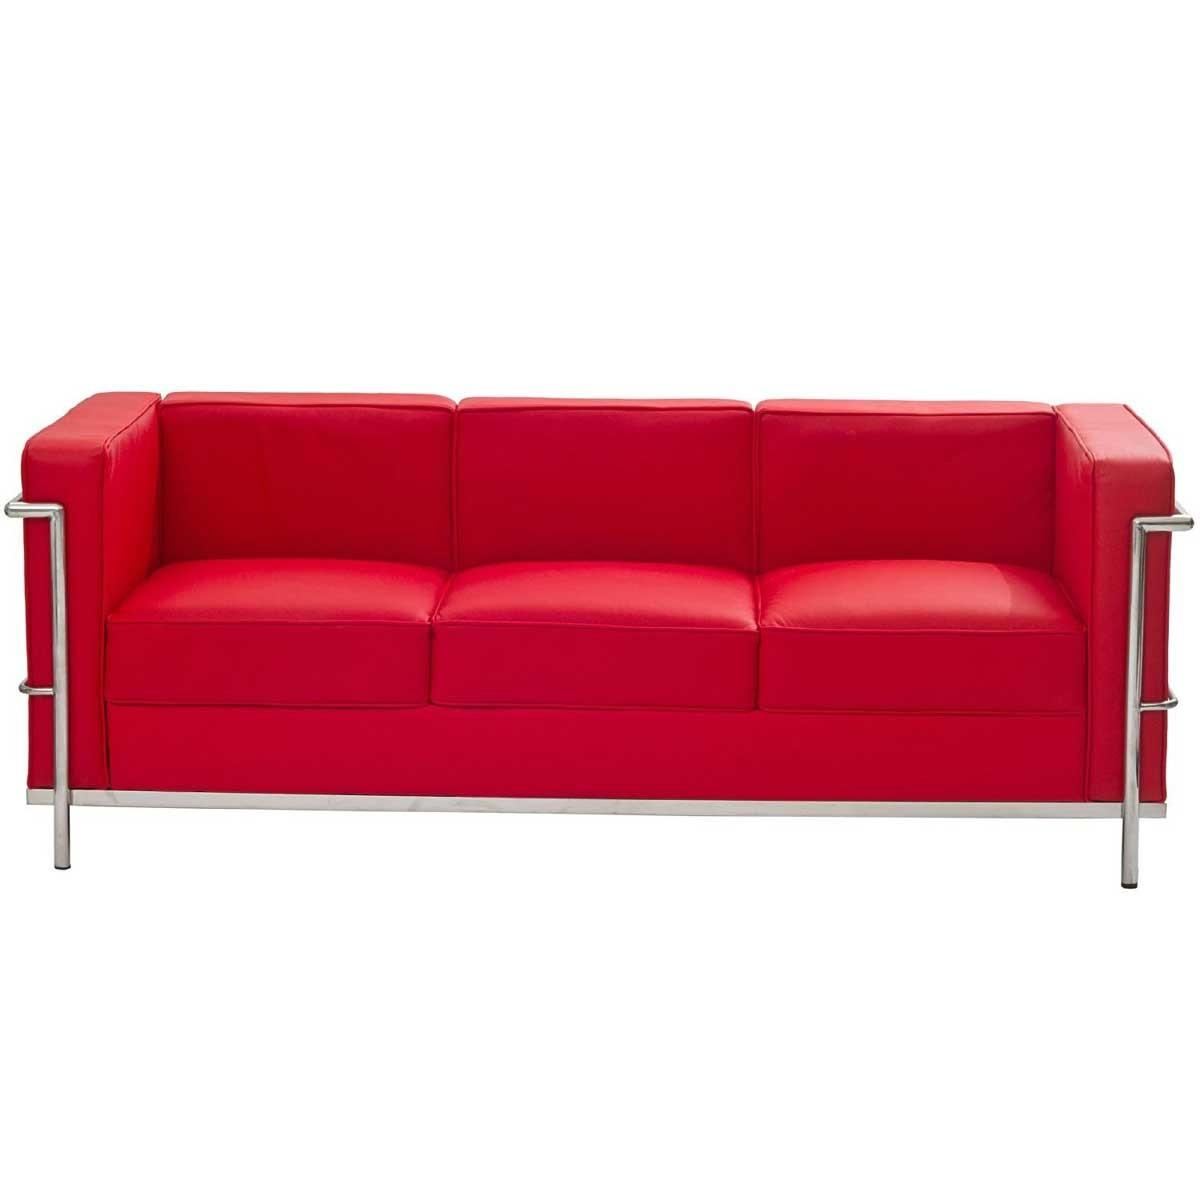 Red Leather Sofa Decorating Ideas Knowledgebase